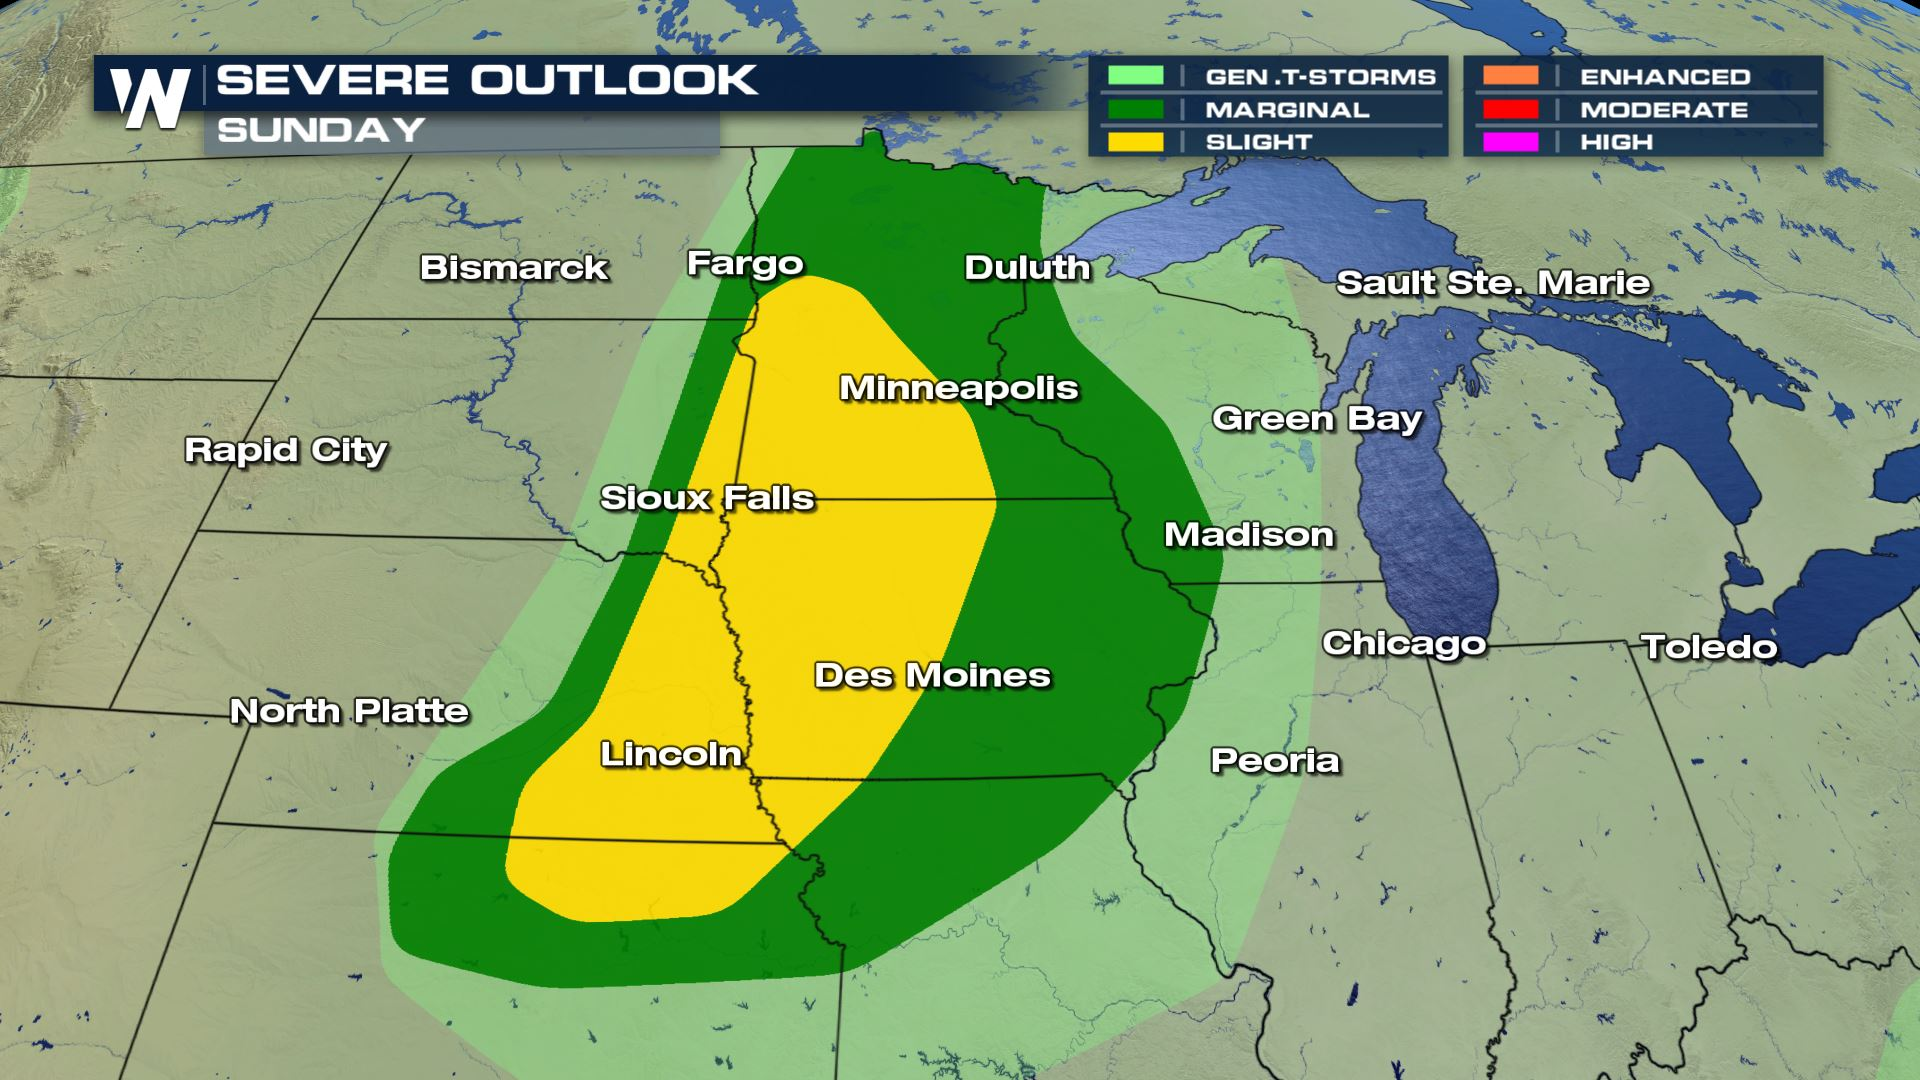 Severe Weather Sunday in the Midwest